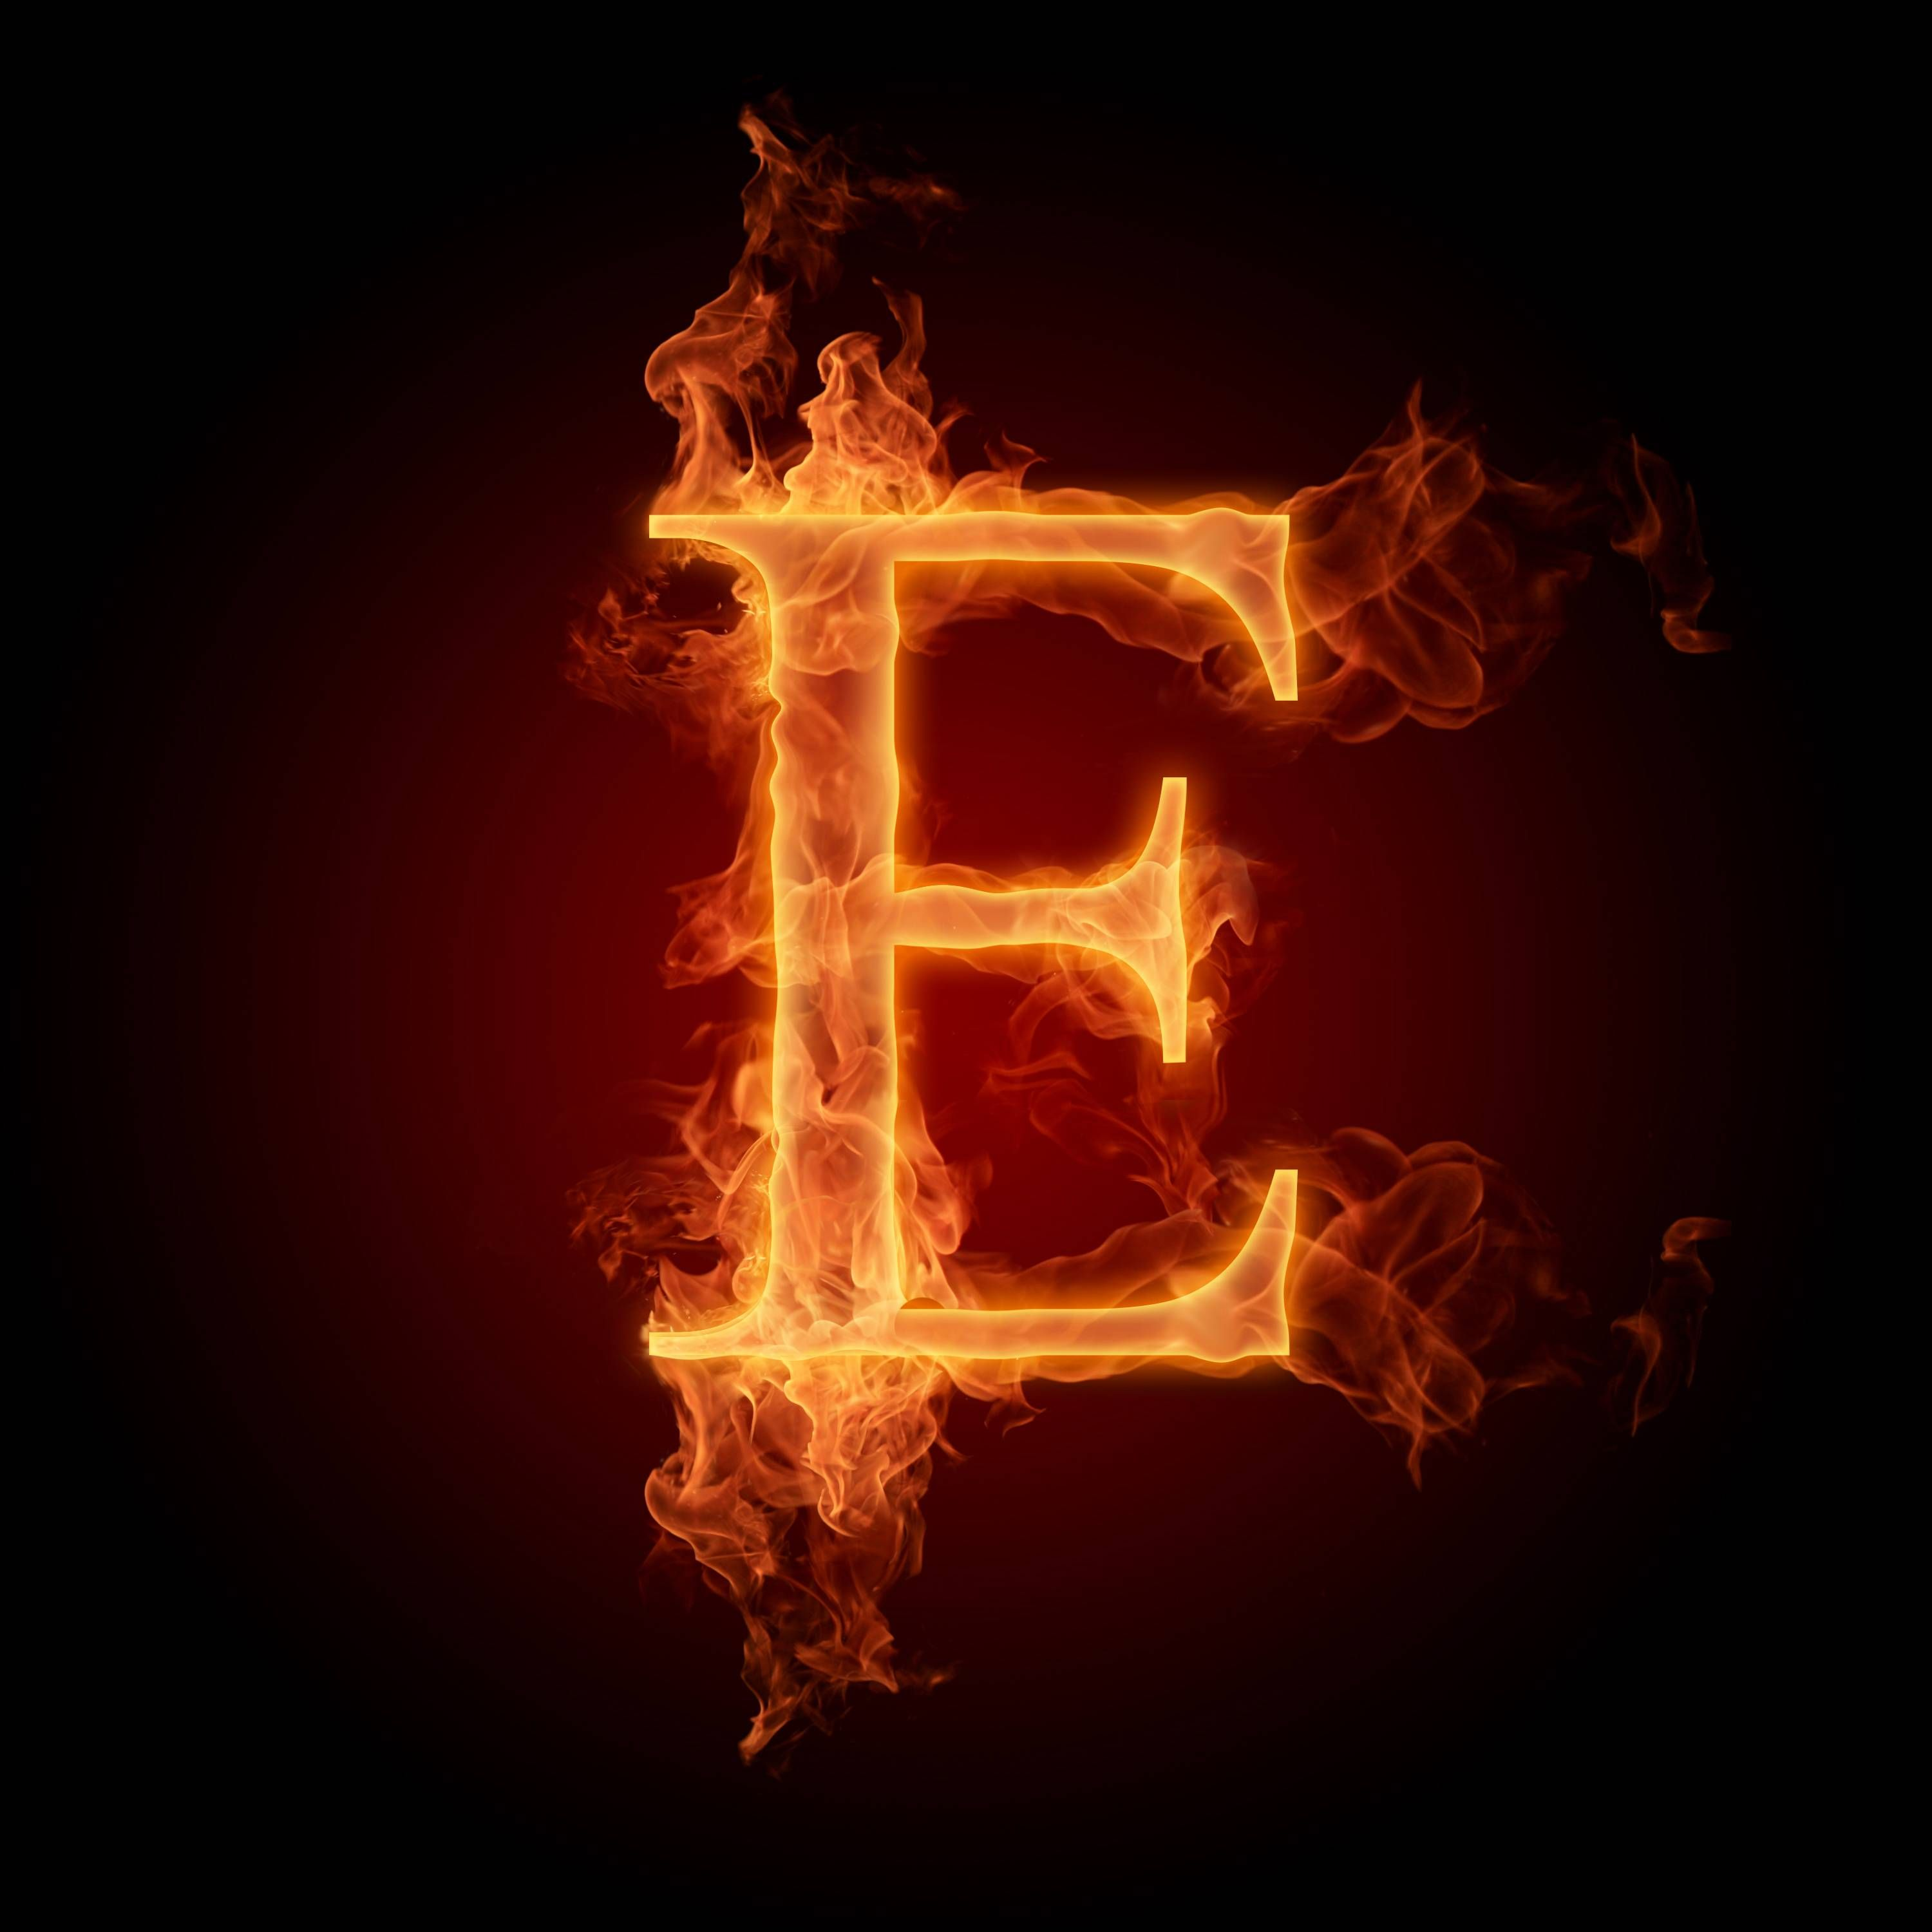 Image - E-Fire-Letters-hd-Wallpapers.jpg | Sketch Universe Wikia ...